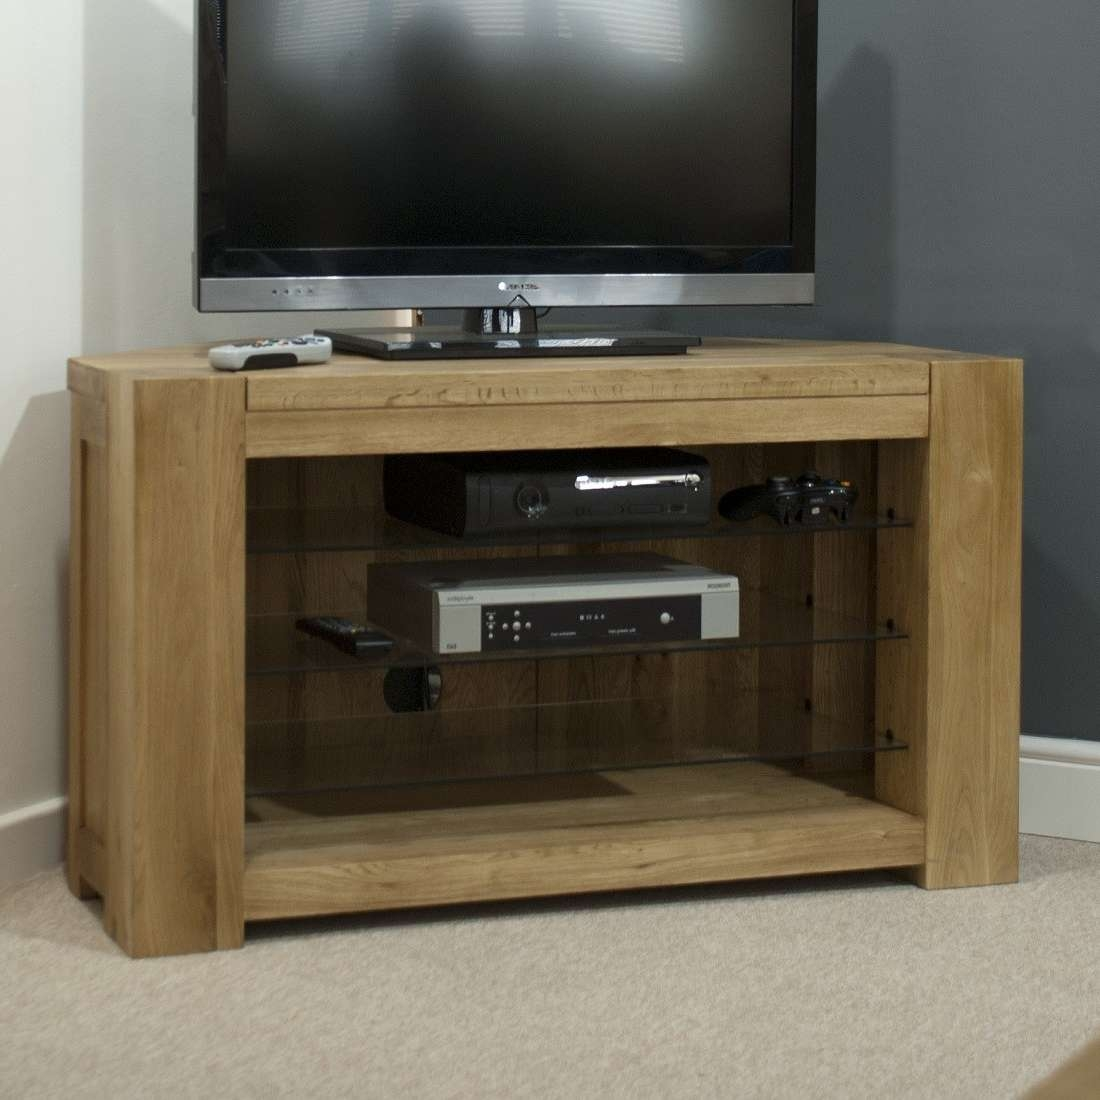 Trend Solid Oak Corner Tv Unit | Oak Furniture Uk Inside Rustic Oak Tv Stands (View 13 of 15)